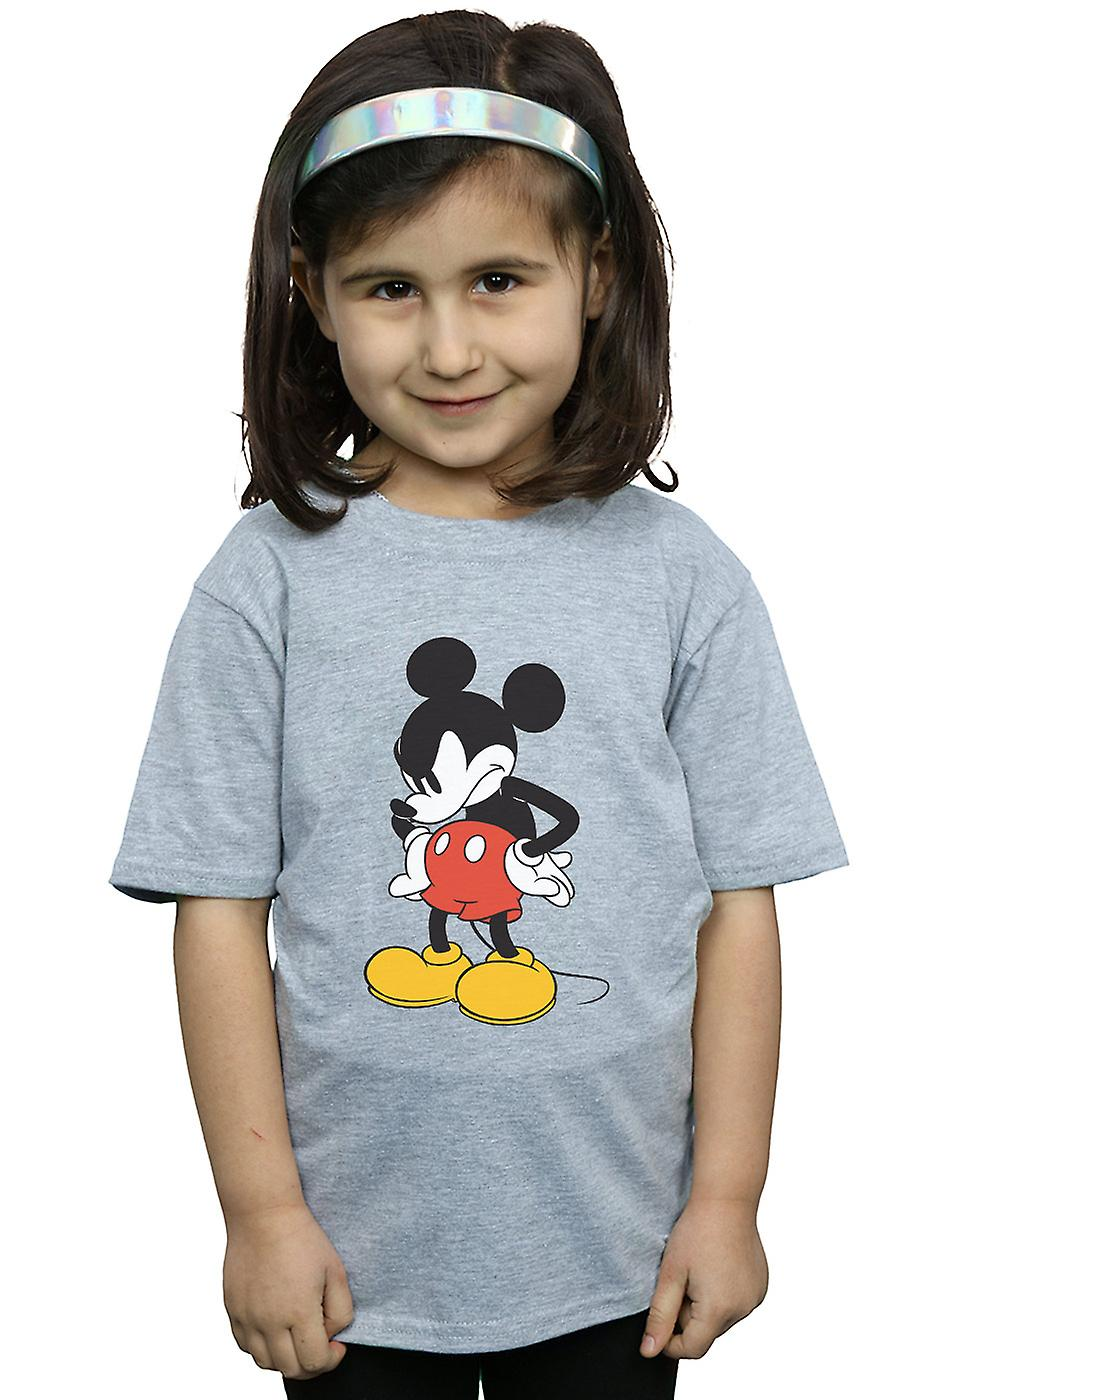 Disney Girls Mickey Mouse Angry Look Down T-Shirt